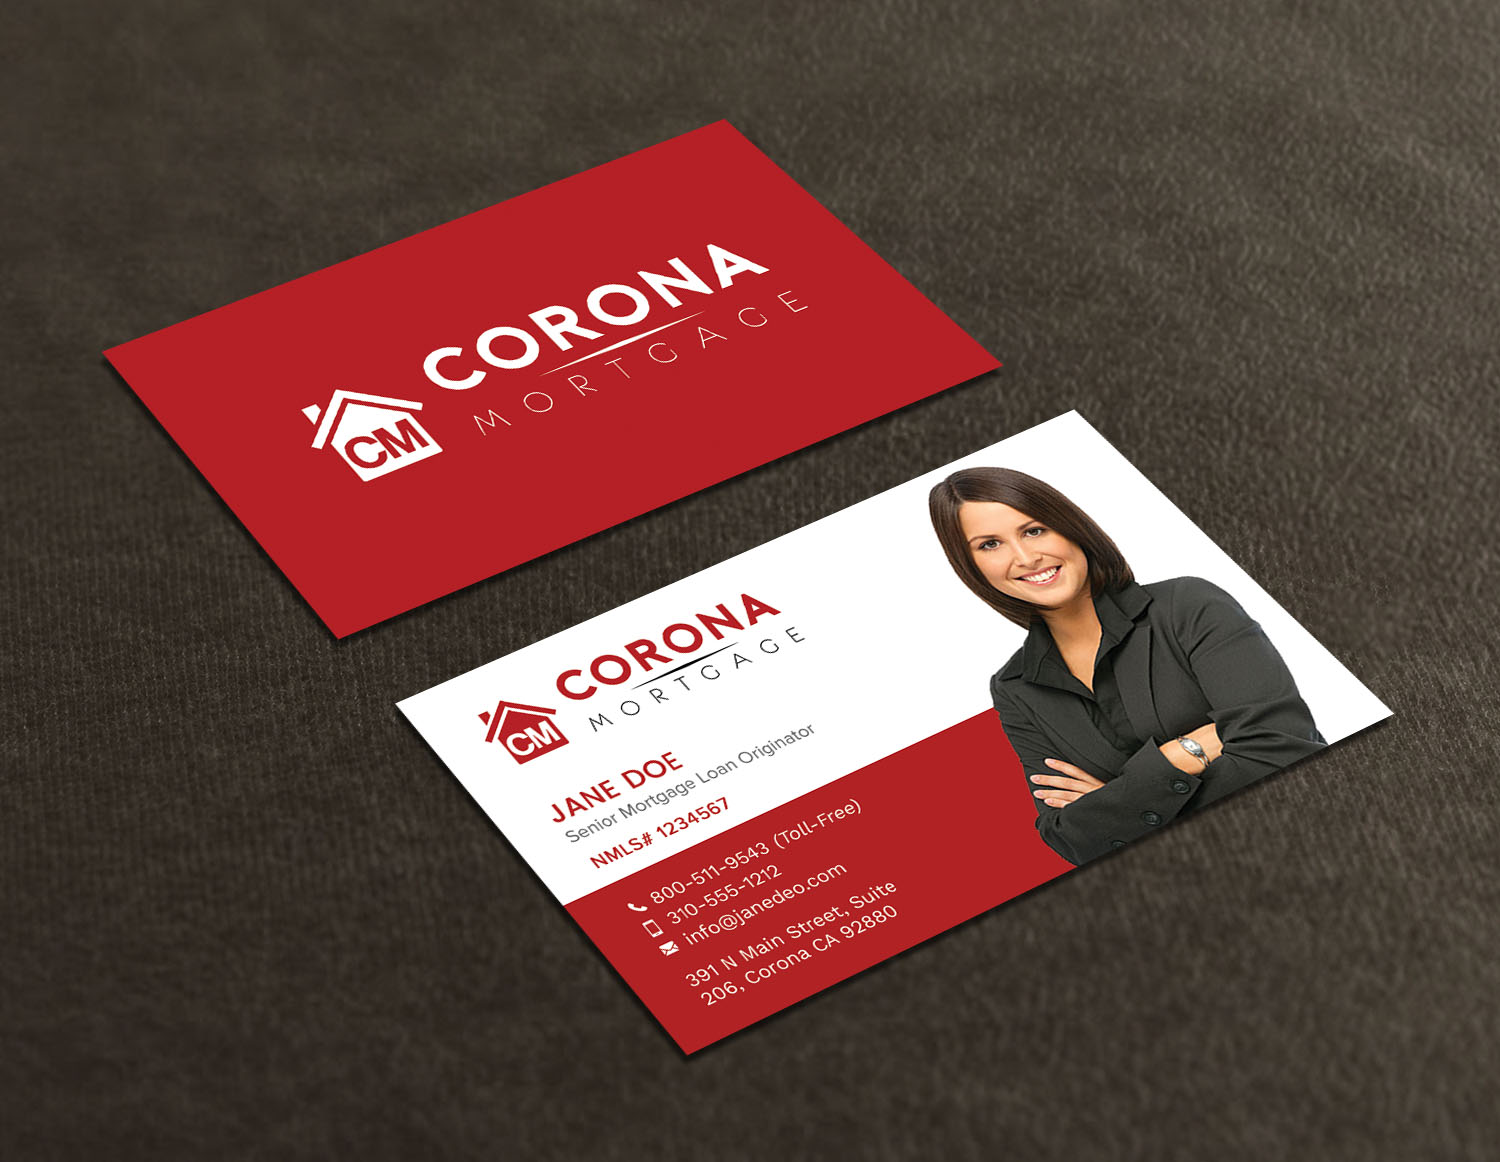 Modern upmarket mortgage lender business card design for a company business card design by avanger000 for this project design 17320418 reheart Choice Image